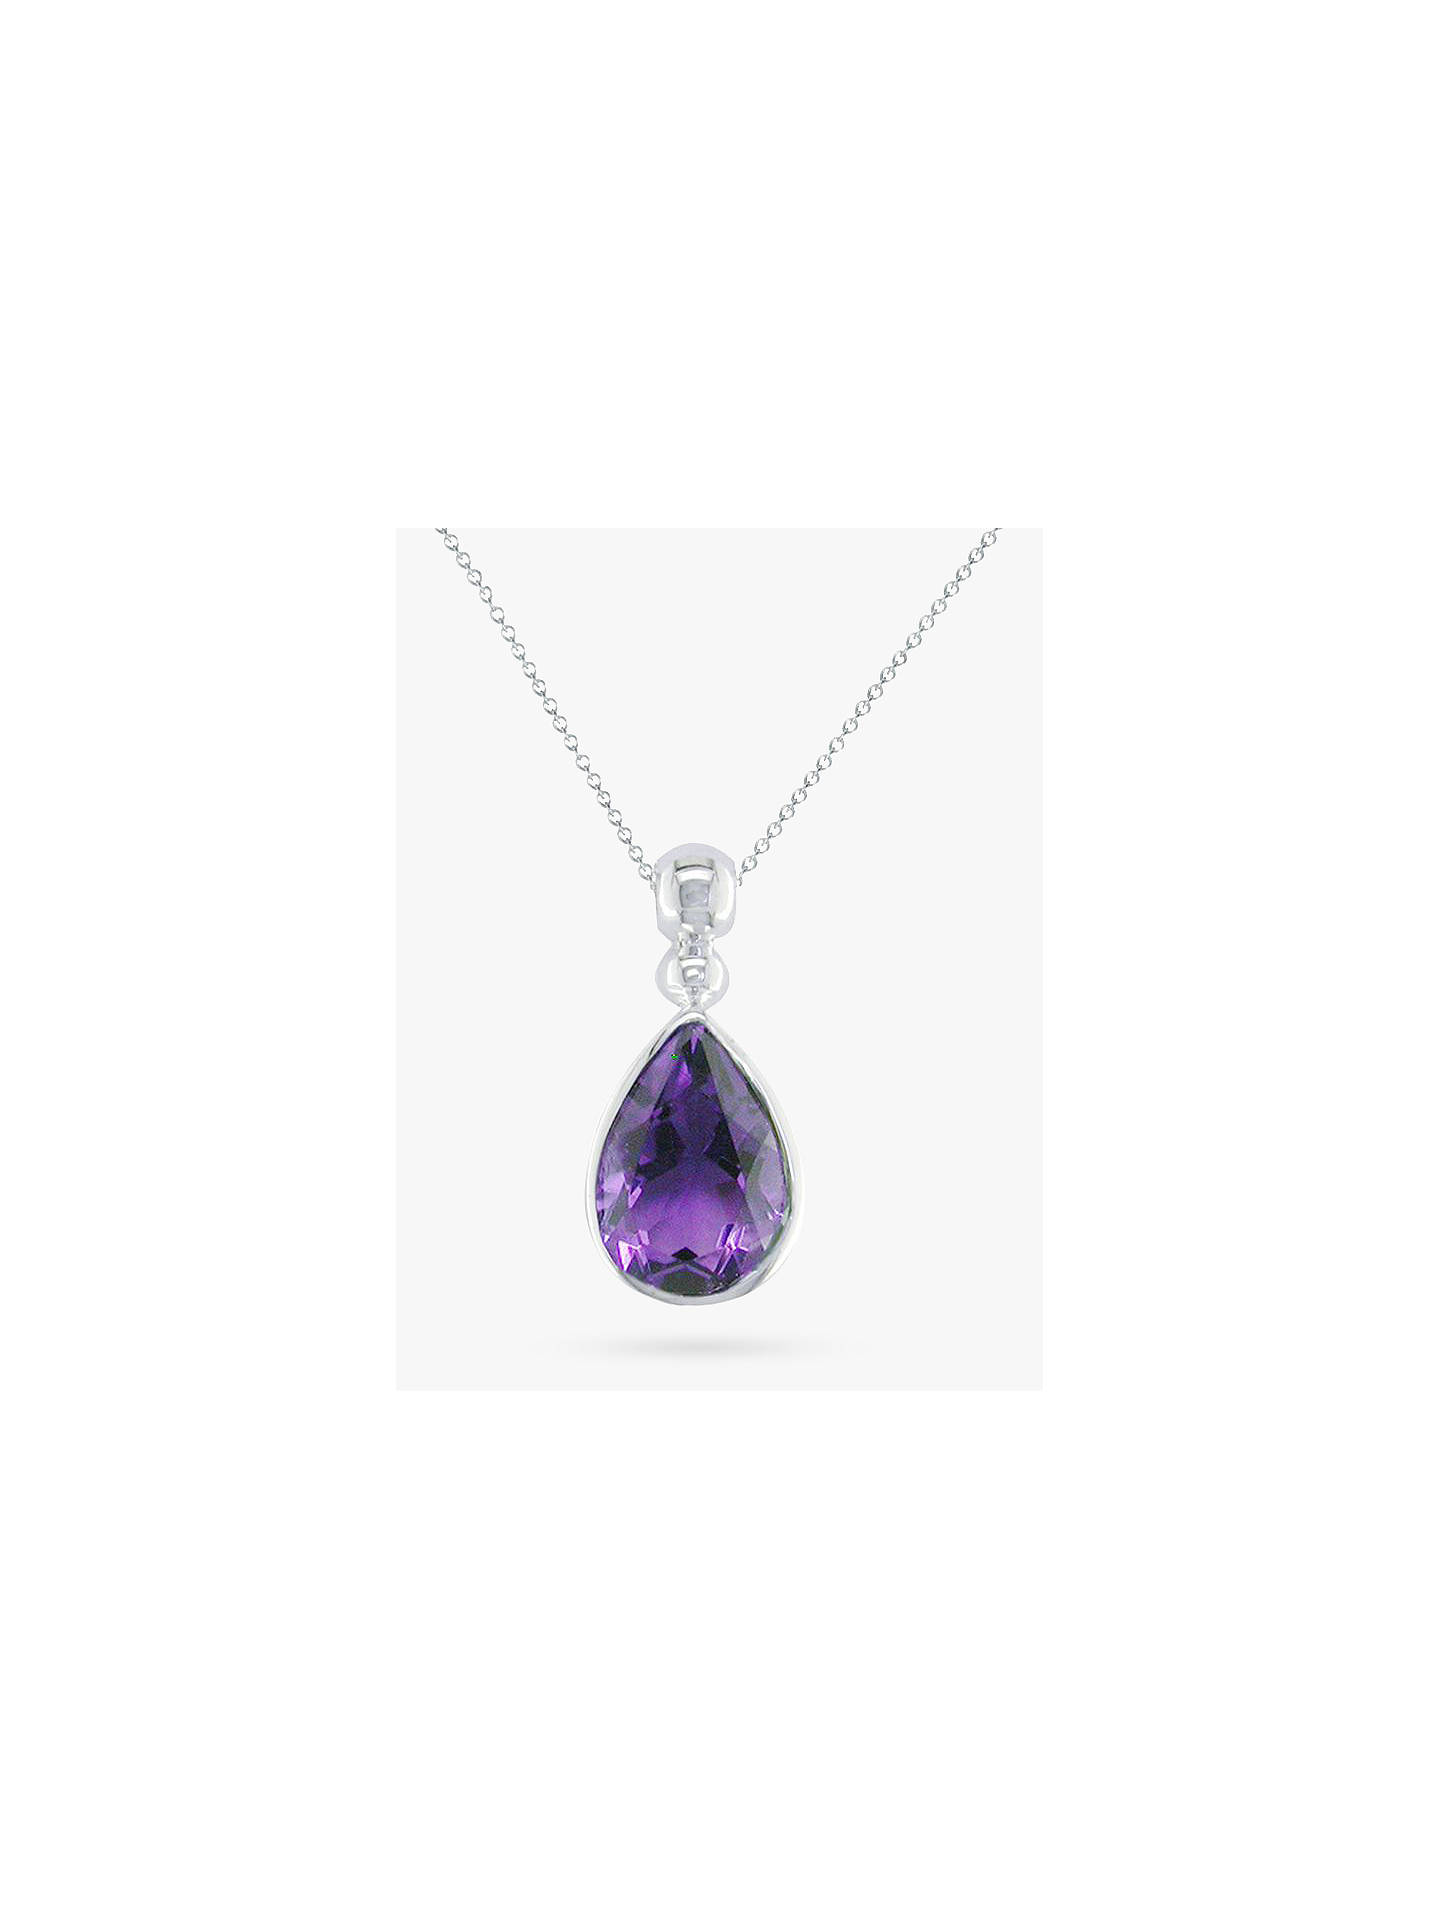 BuyEWA 9ct White Gold Teardrop Pendant Necklace, Amethyst Online at johnlewis.com